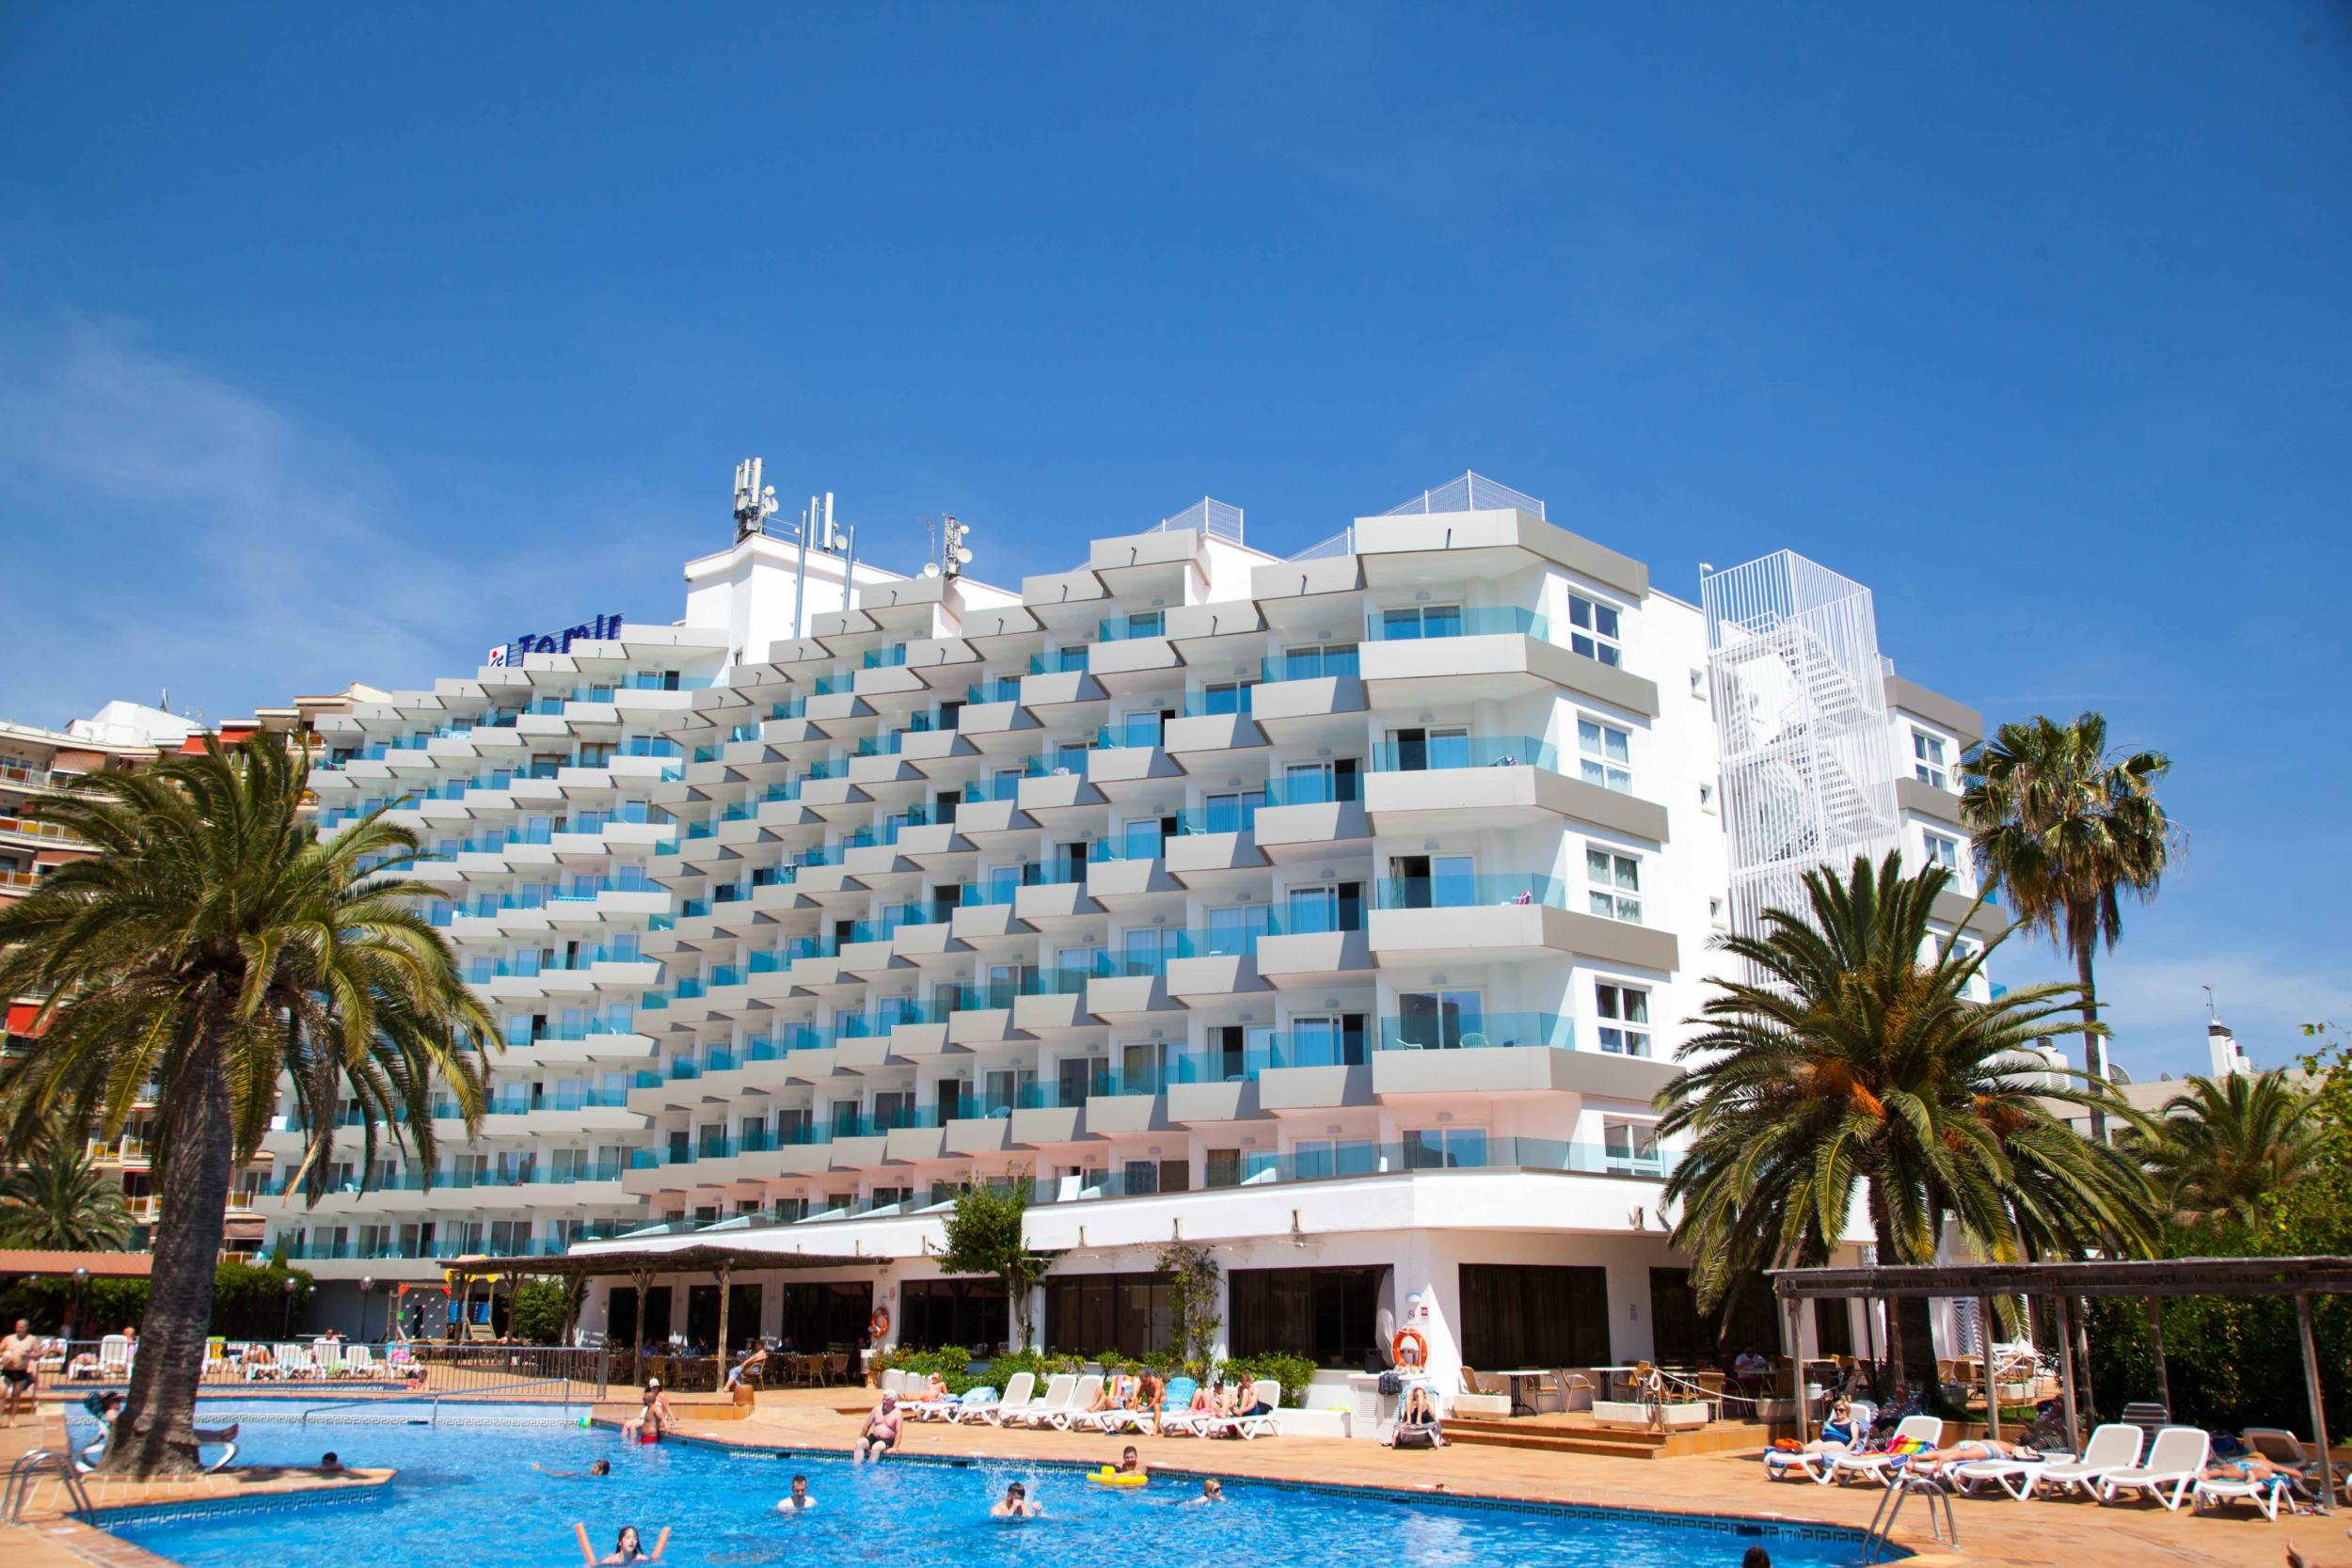 Ola Aparthotel Tomir in Portals Nous, Majorca, Balearic Islands